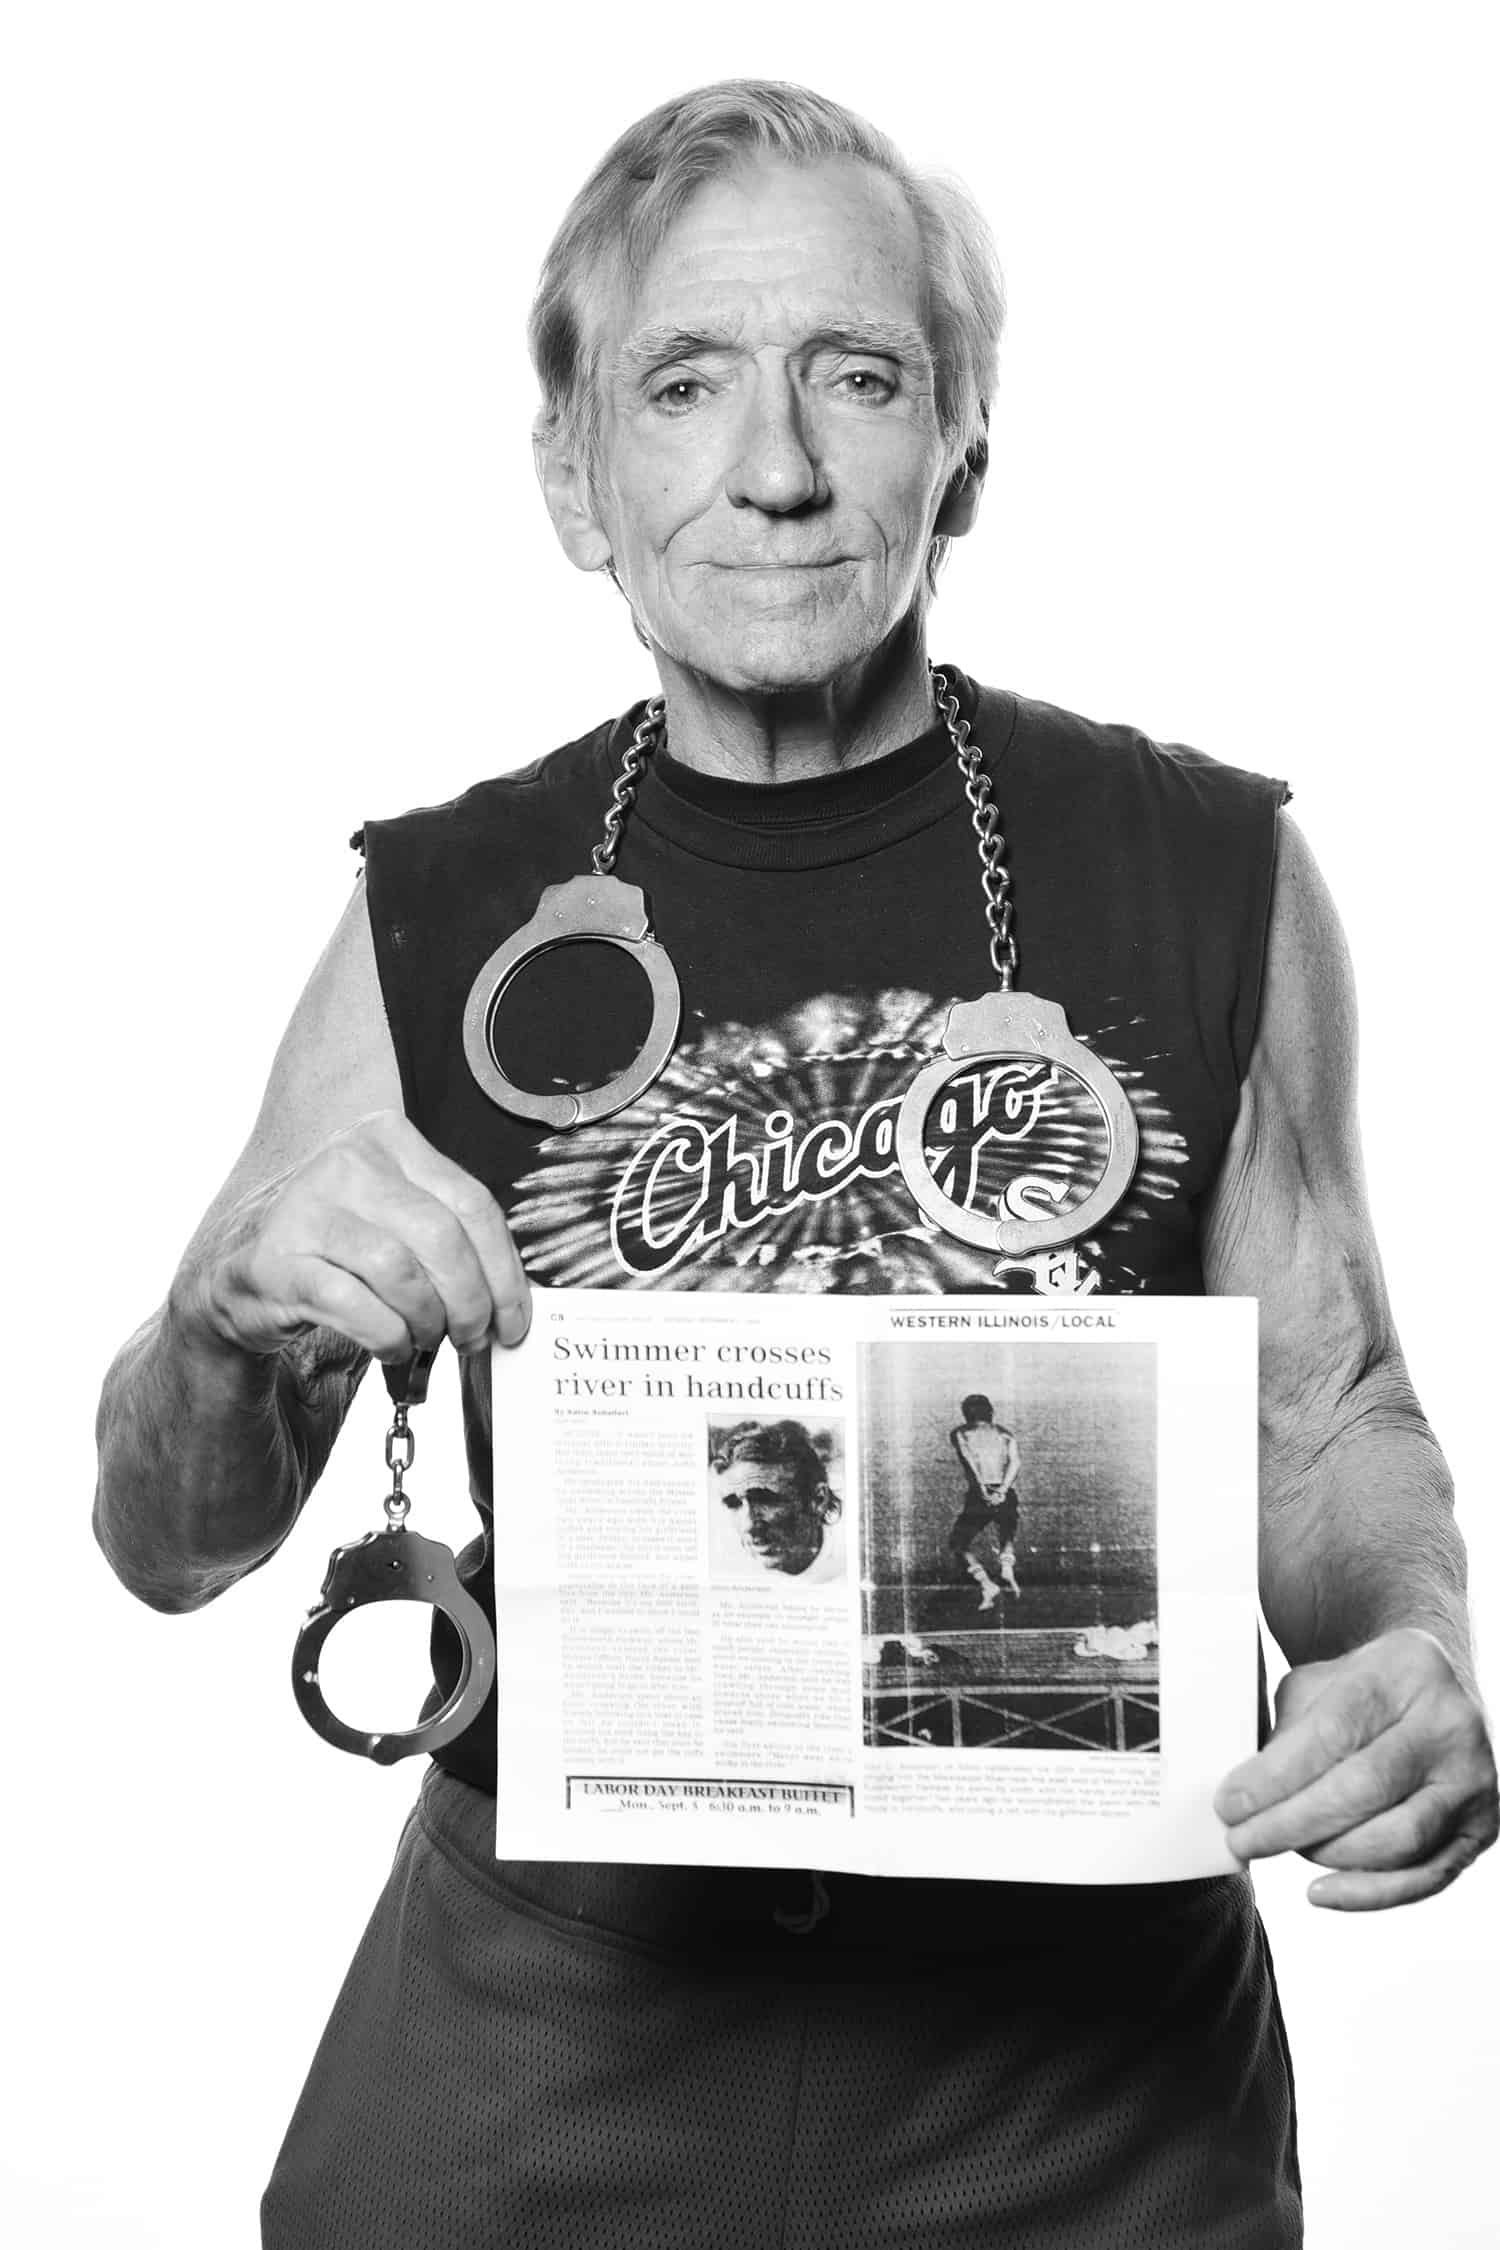 ONE by ONE Community Portrait Putnam John C. Anderson handcuffs 5